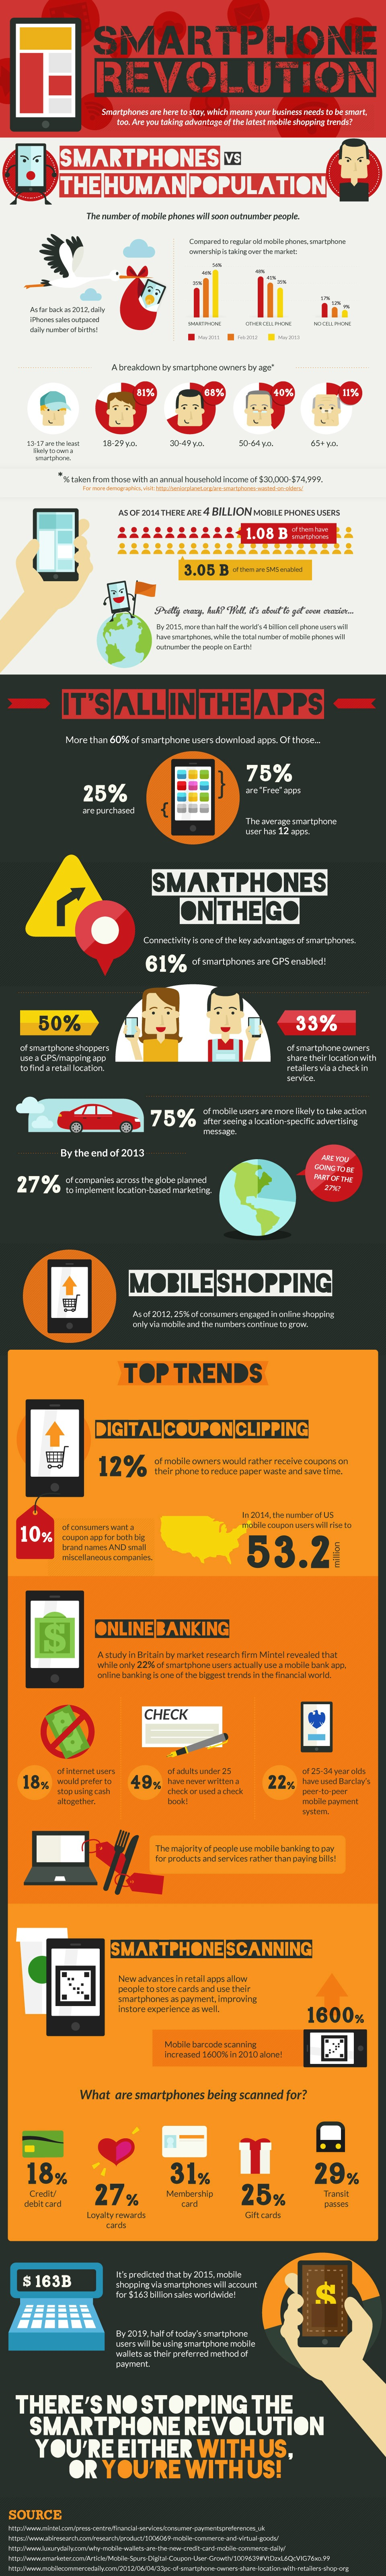 The Mobile Phone Revolution [Infographic]